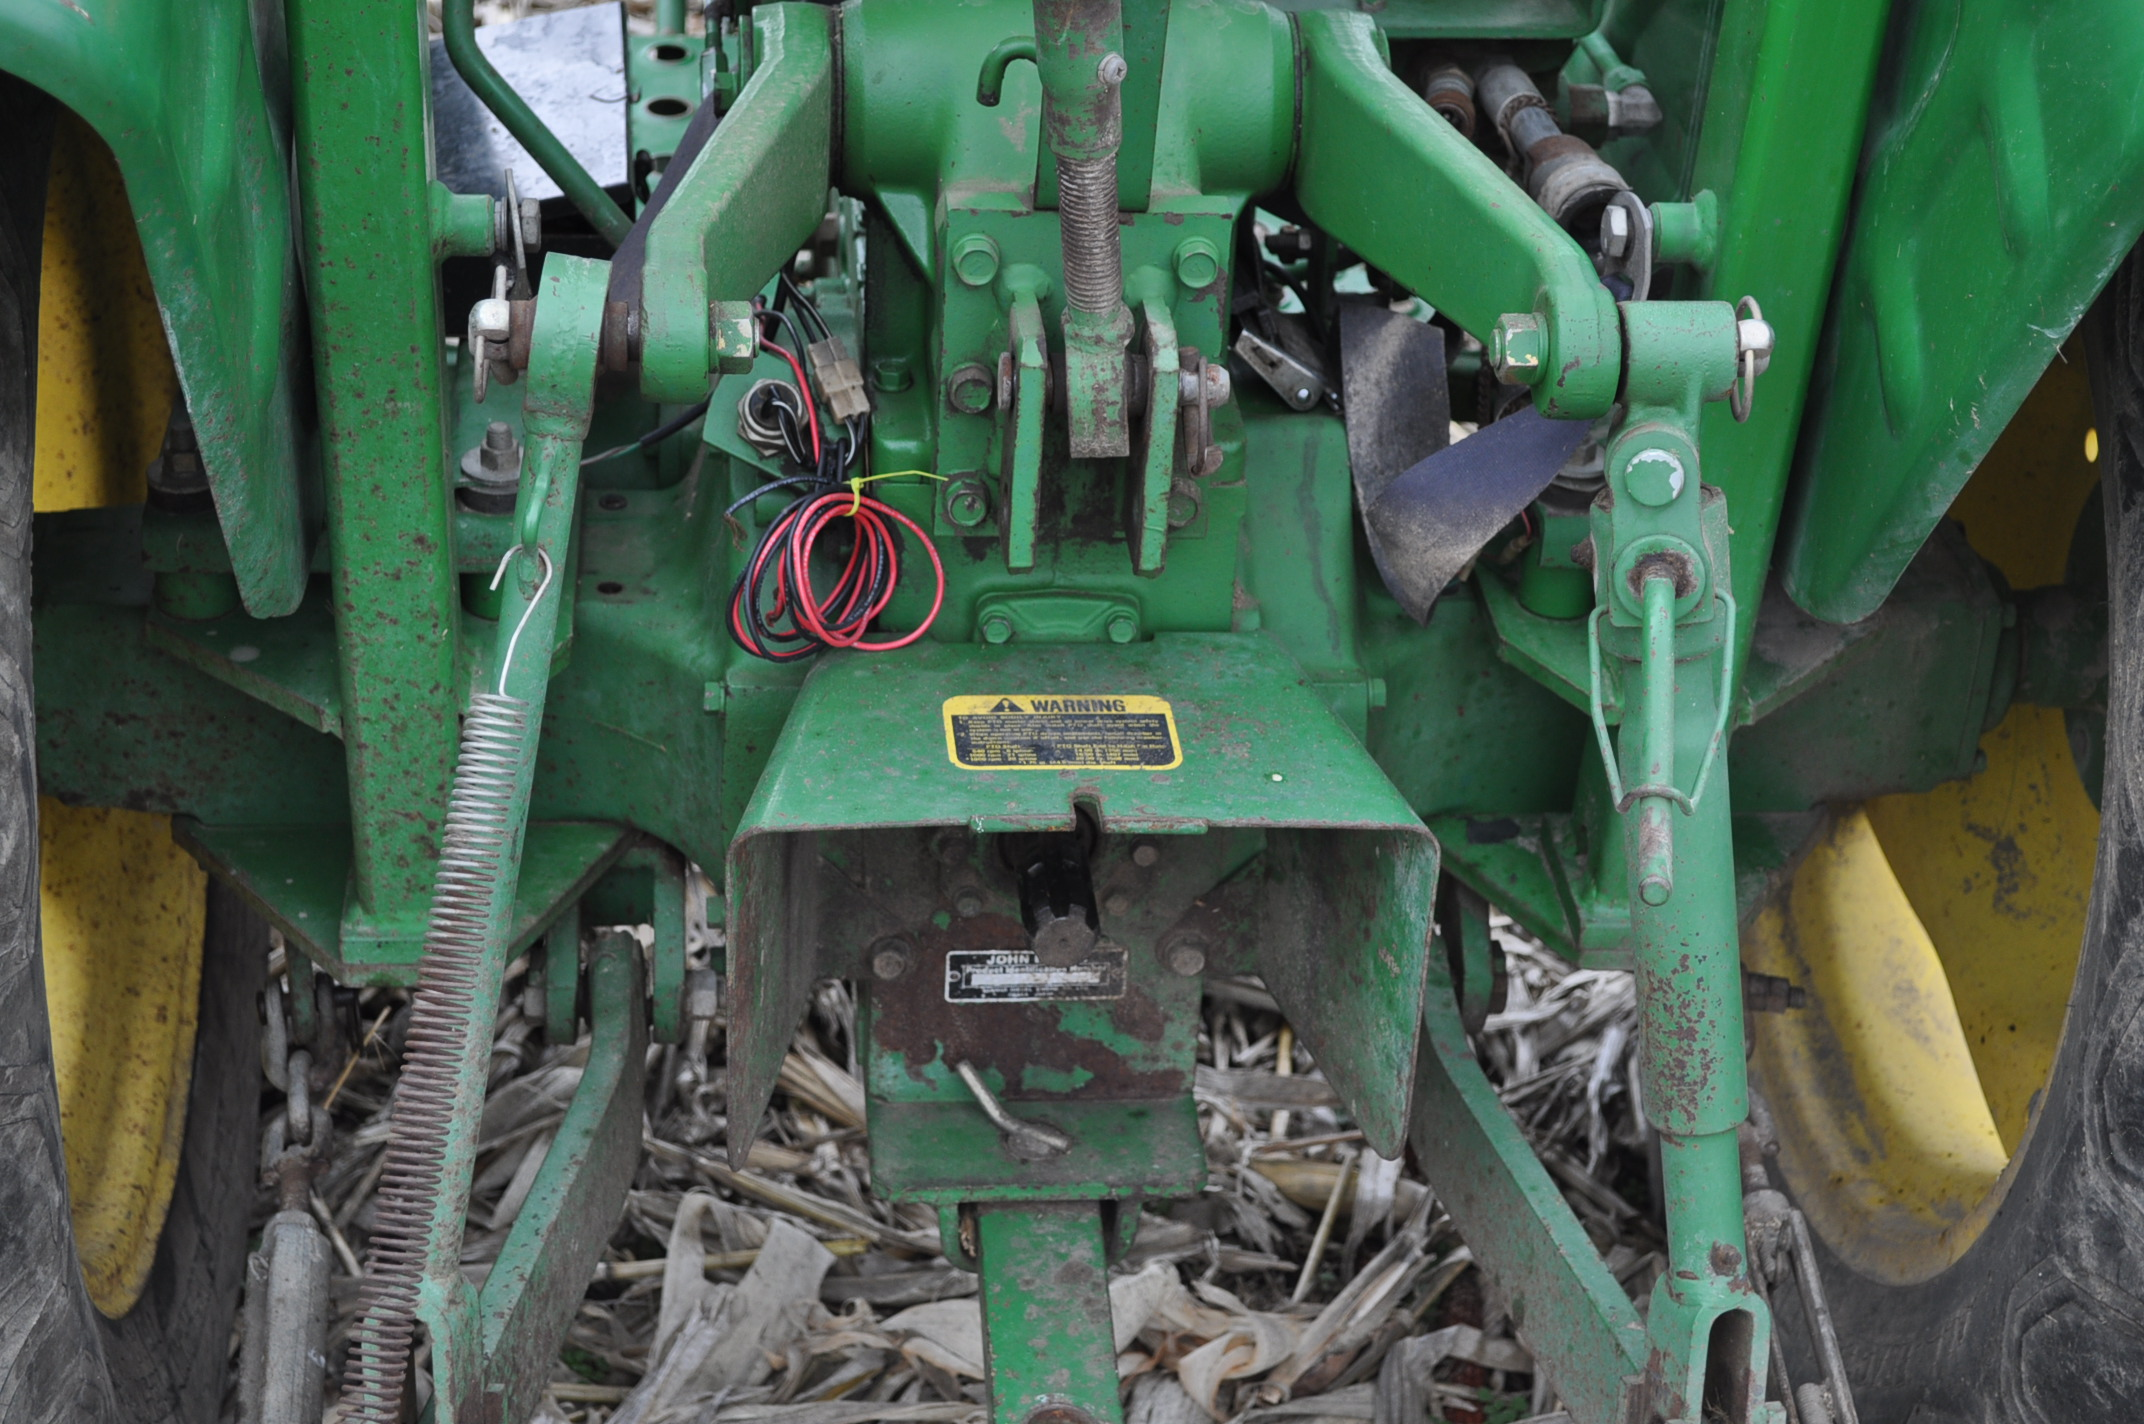 John Deere 850 utility tractor, diesel, 12.4-24 rear, 5.00-16 front, 2 hyd remotes, 3 pt, 540 pto, - Image 9 of 13